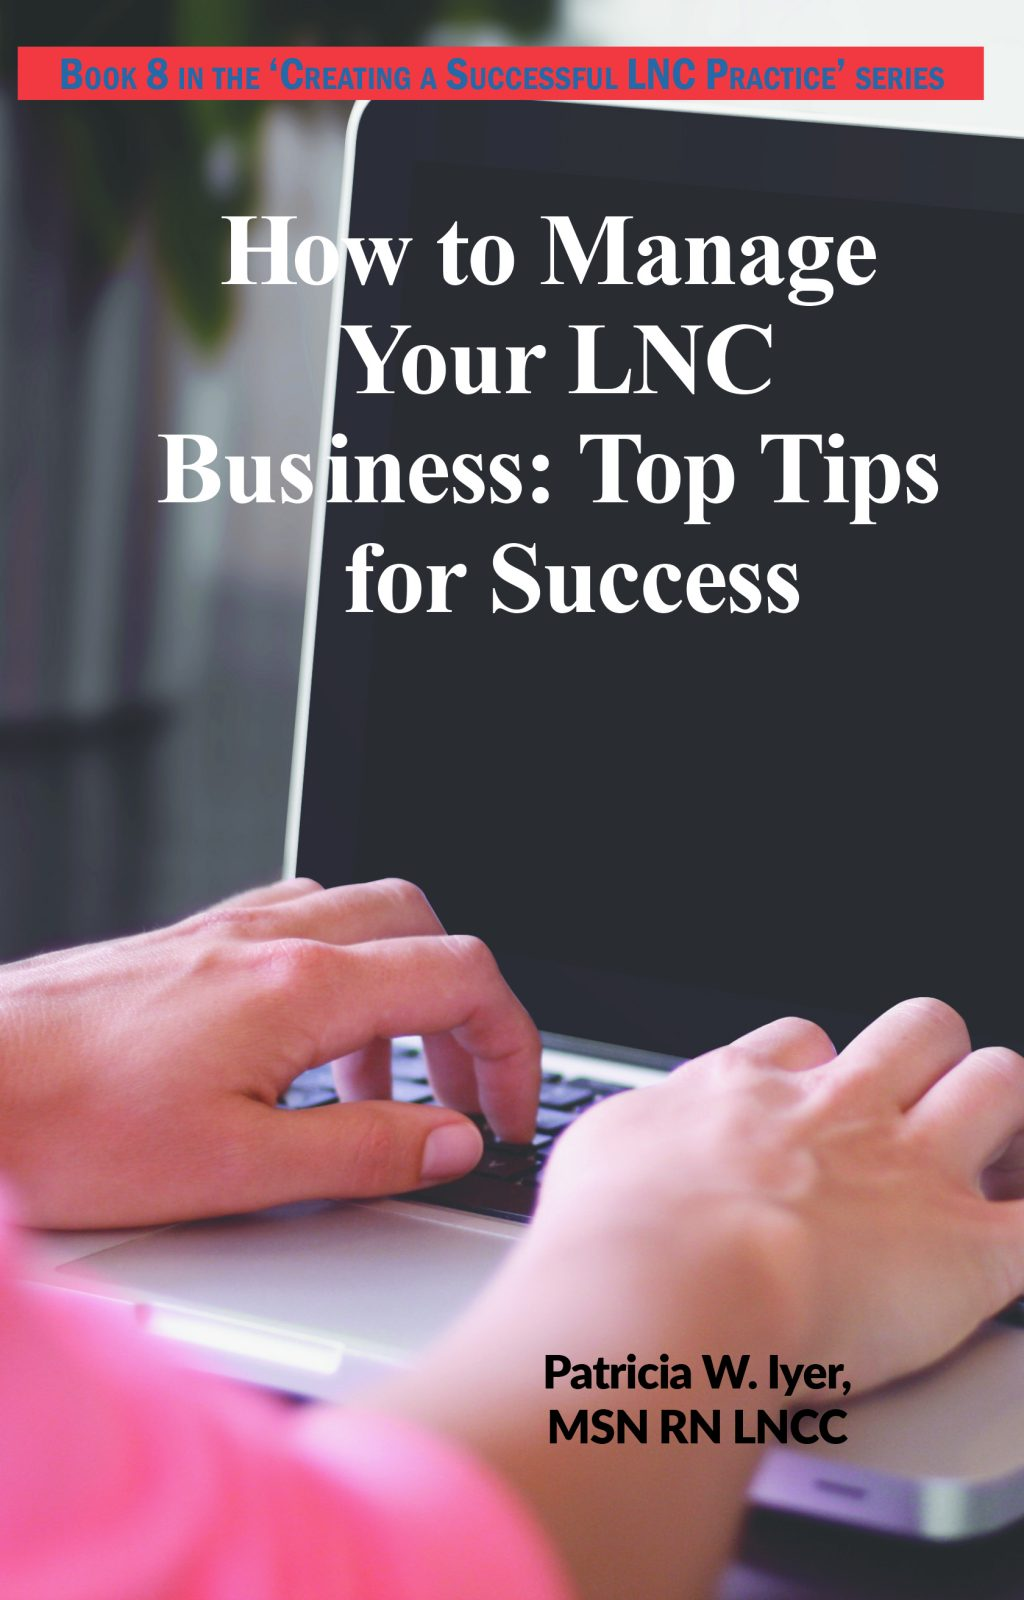 How to Manage Your LNC Business and Clients: Top Tips for Success